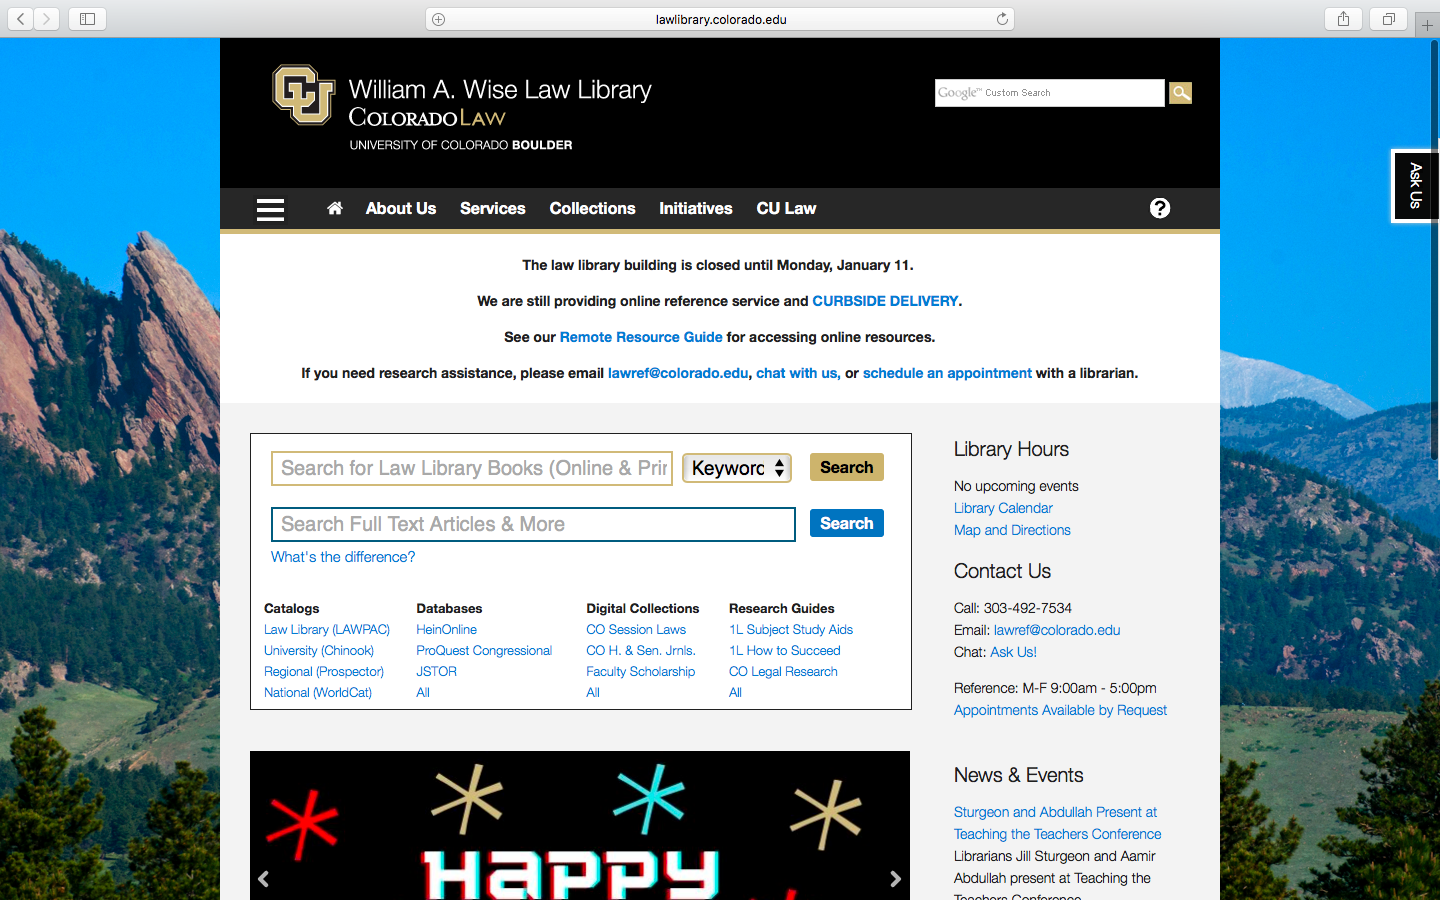 Go to the William A. Wise Law Library Website.